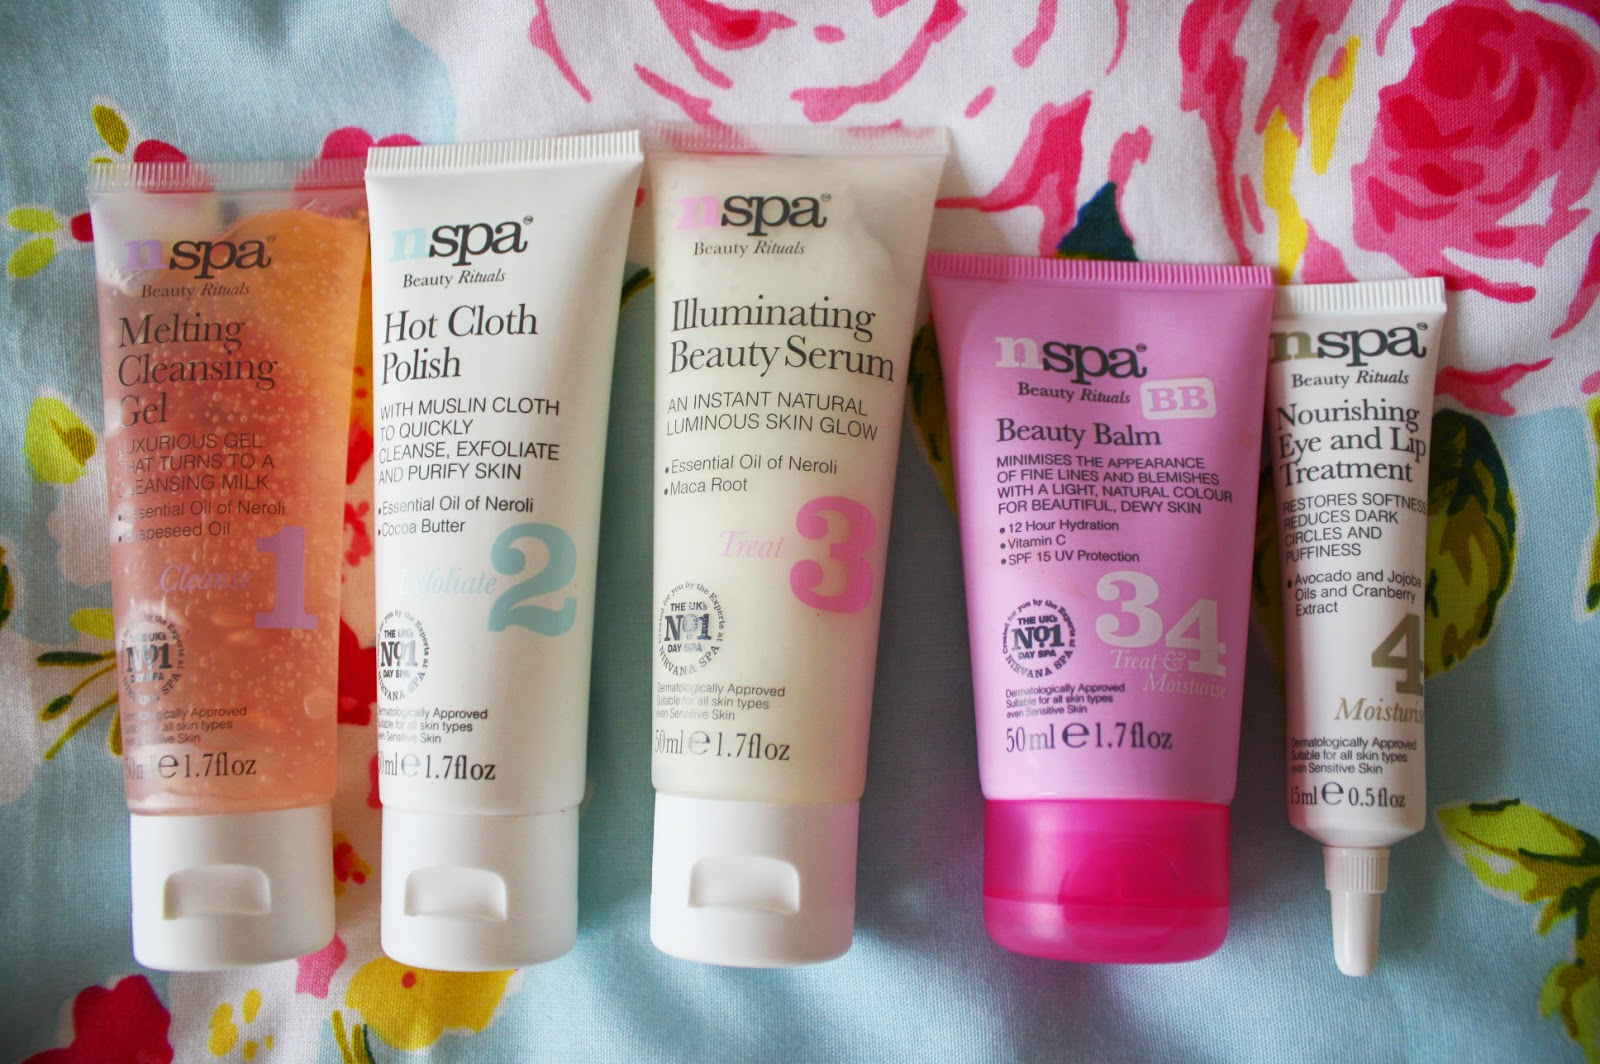 An array of skincare products from the NSPA collection